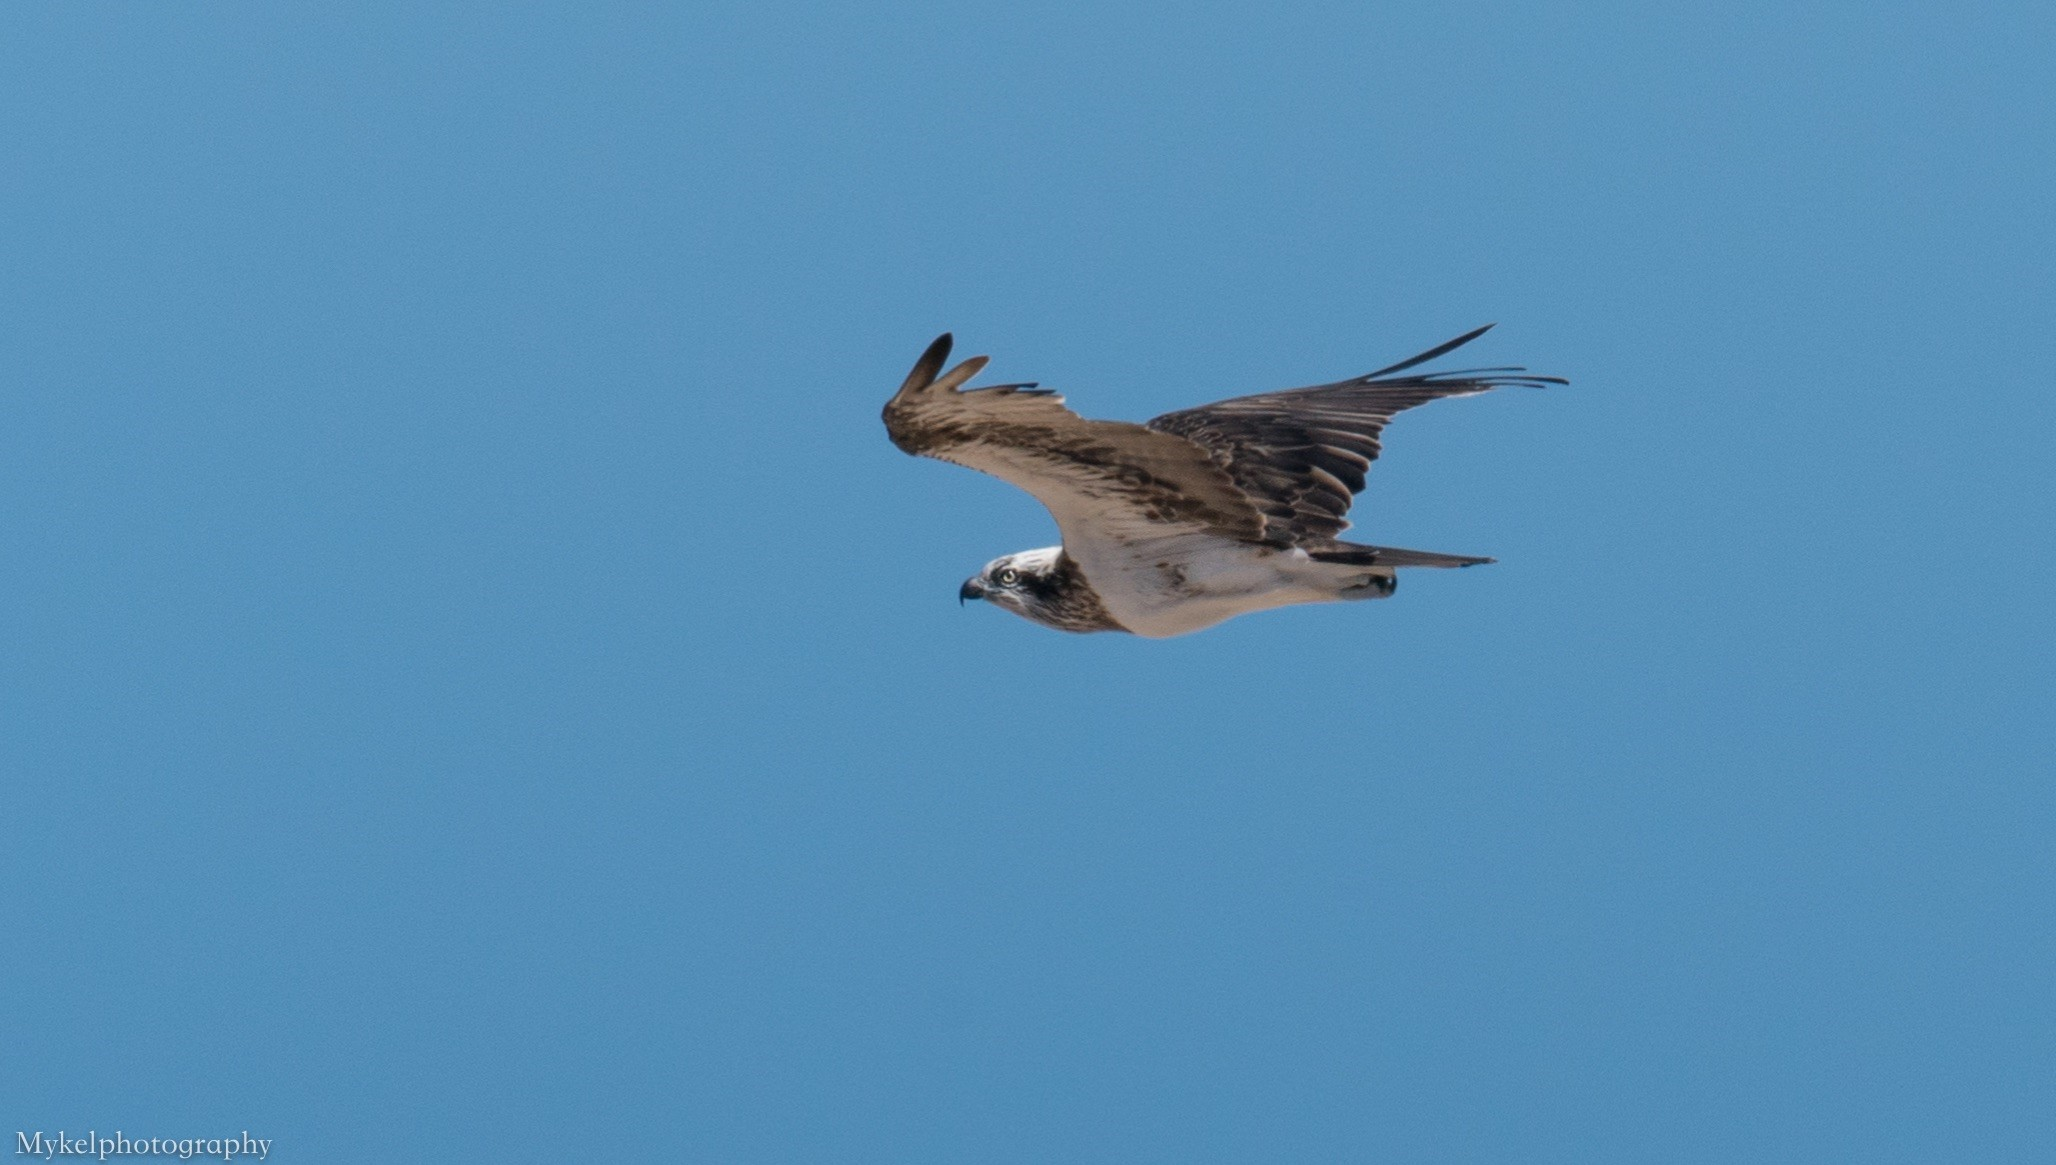 As the Eastern Osprey fly's off into the sky...it's bye for now, but will return....